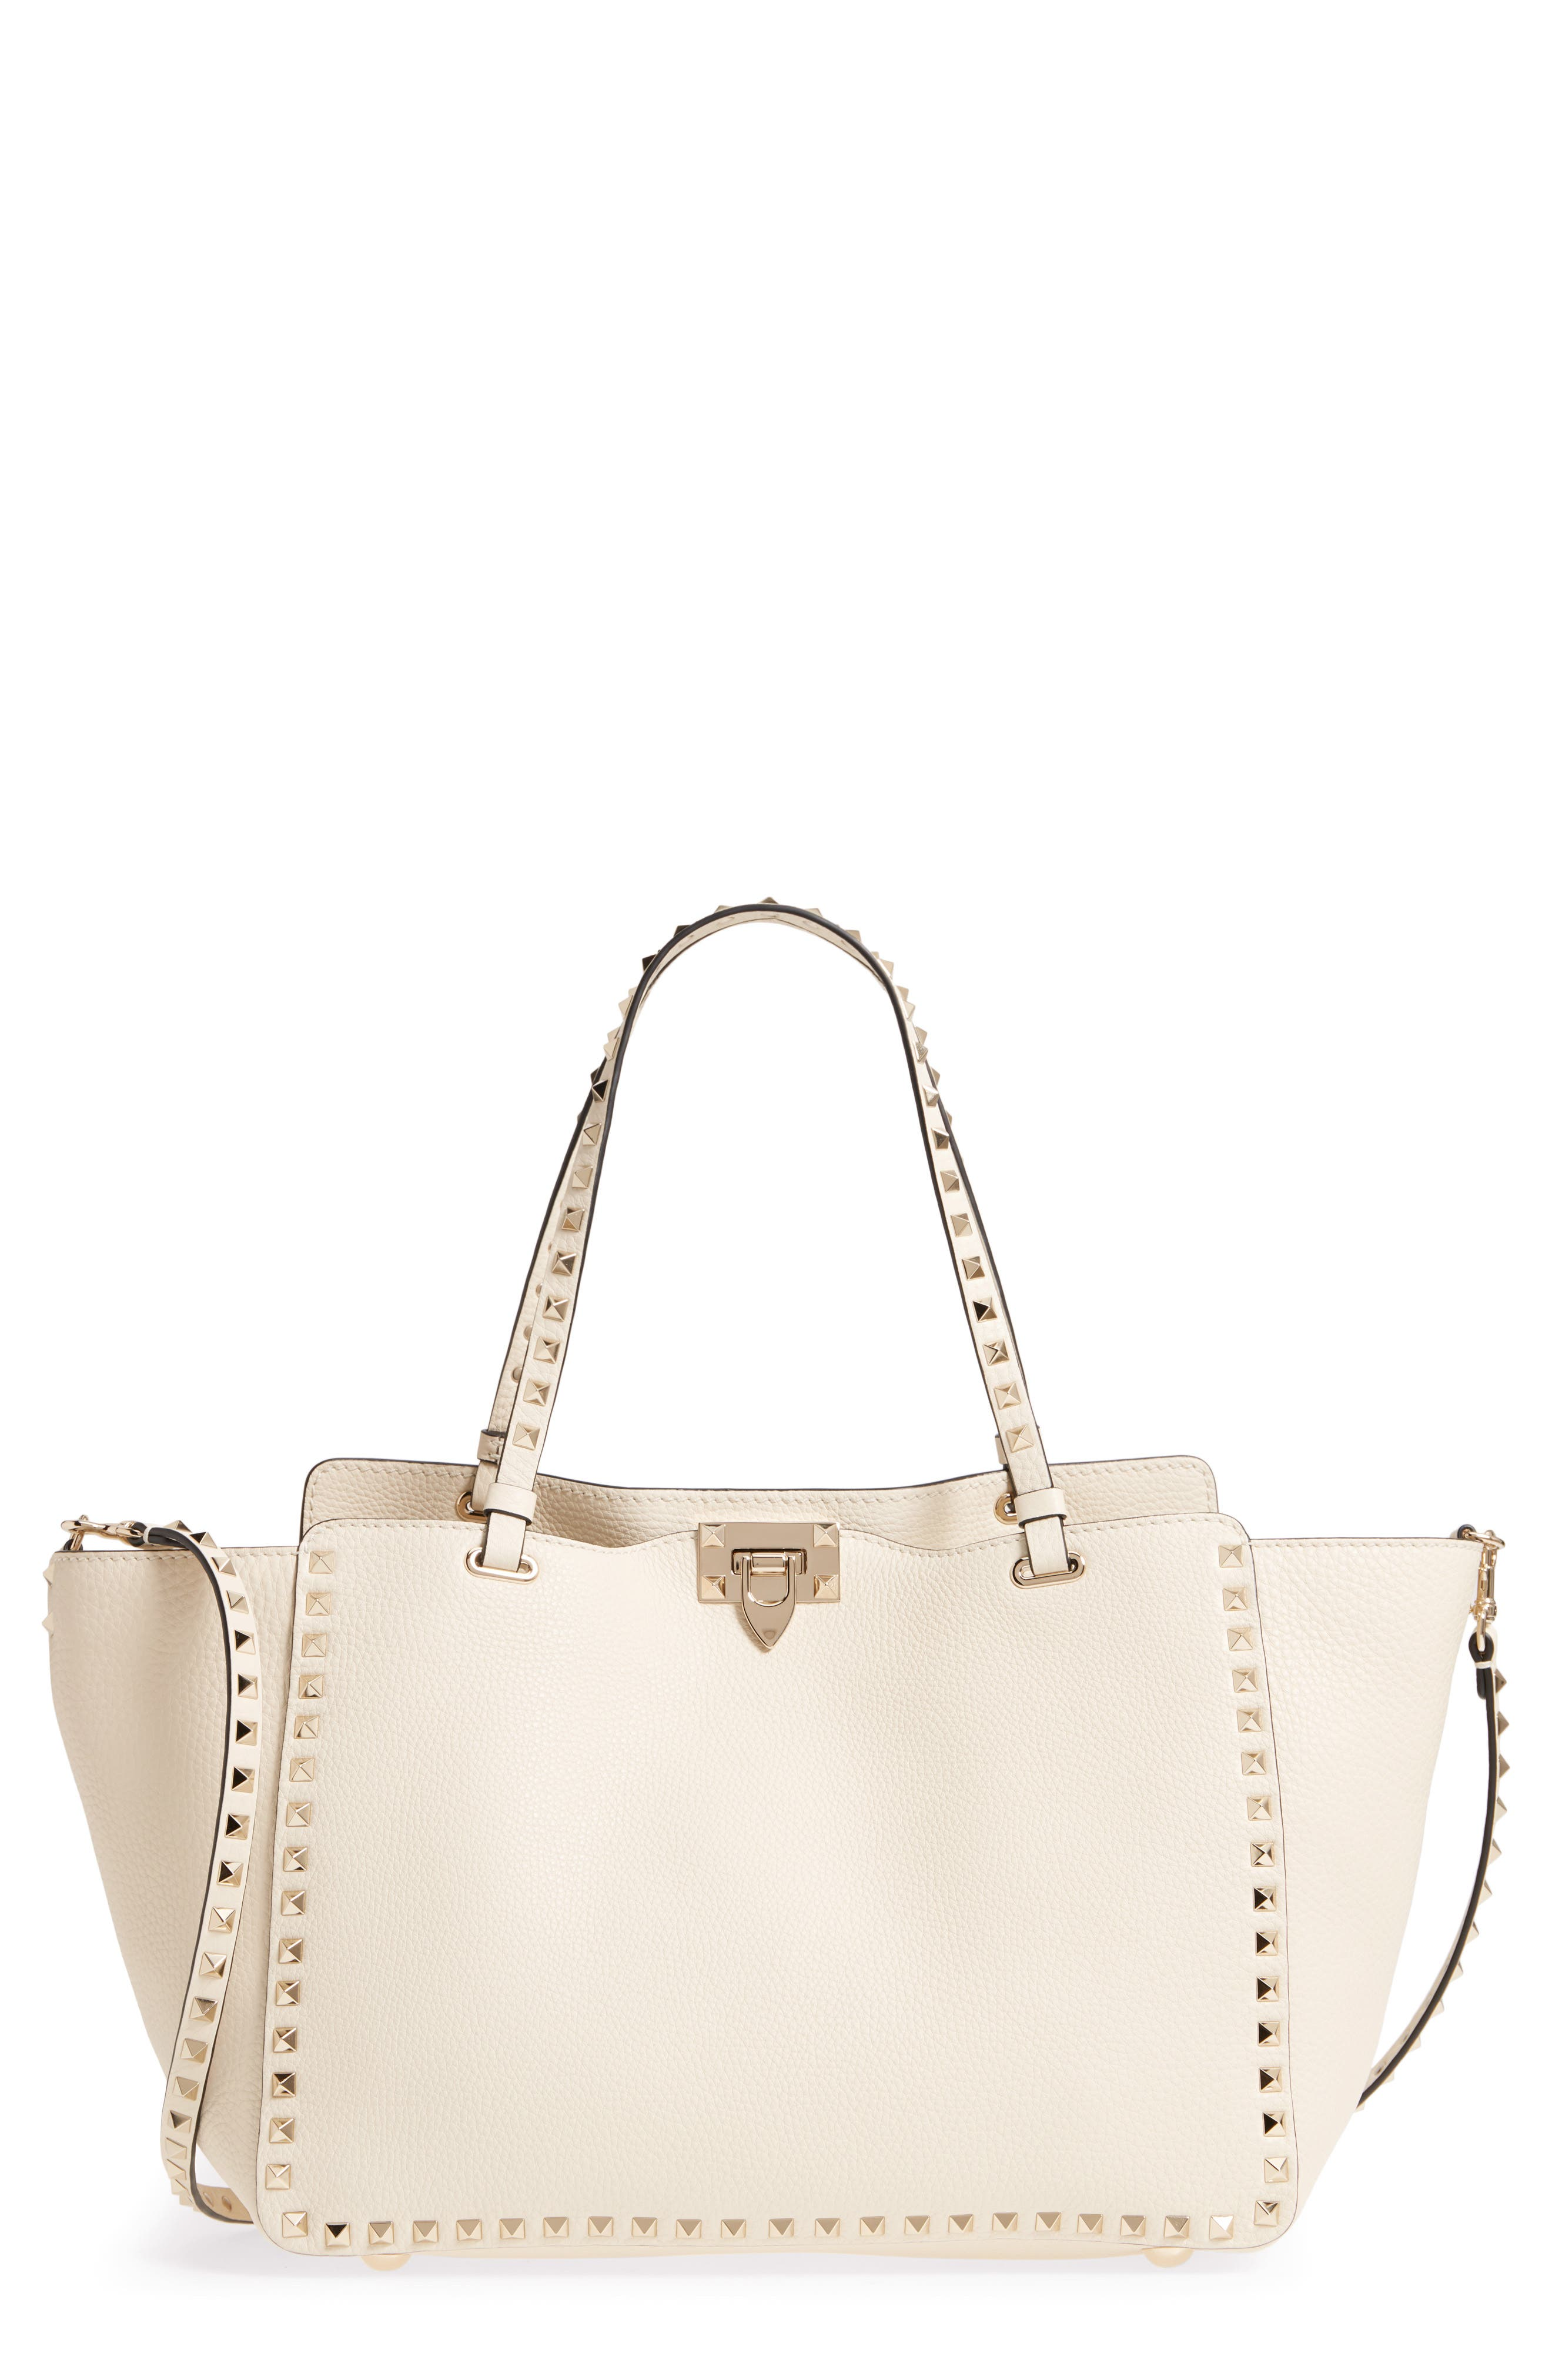 Alternate Image 1 Selected - VALENTINO GARAVANI Medium Rockstud Leather Double Handle Tote